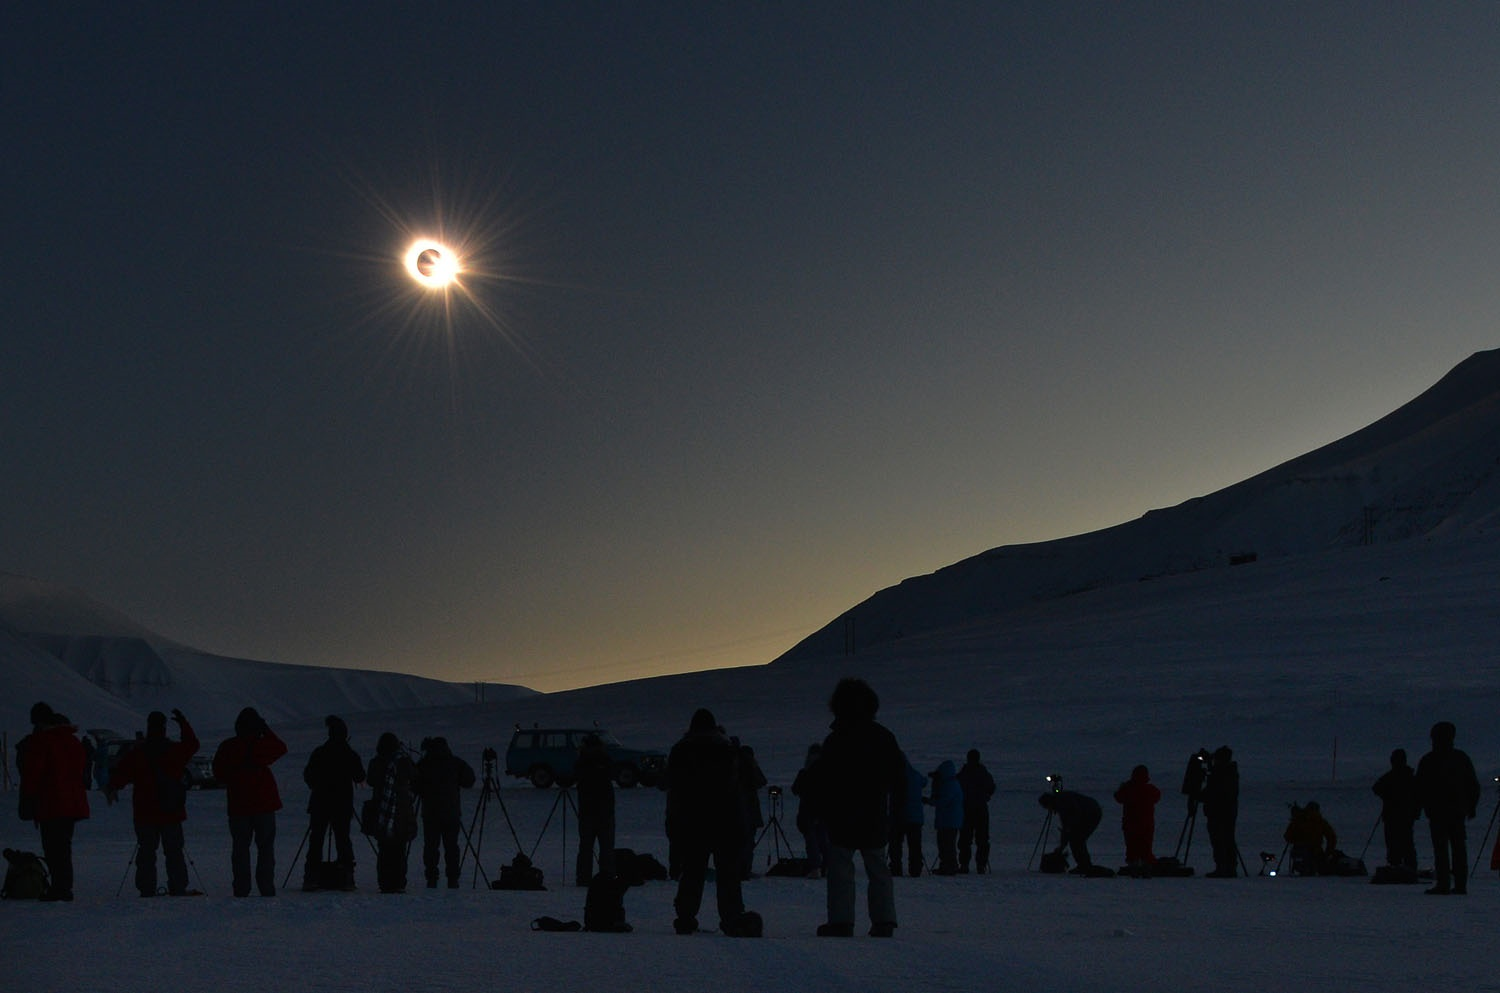 March 2015 Solar Eclipse over Svalbard Svalbard, Norway March 20, 2015  Image Credit & Copyright: Stan Honda